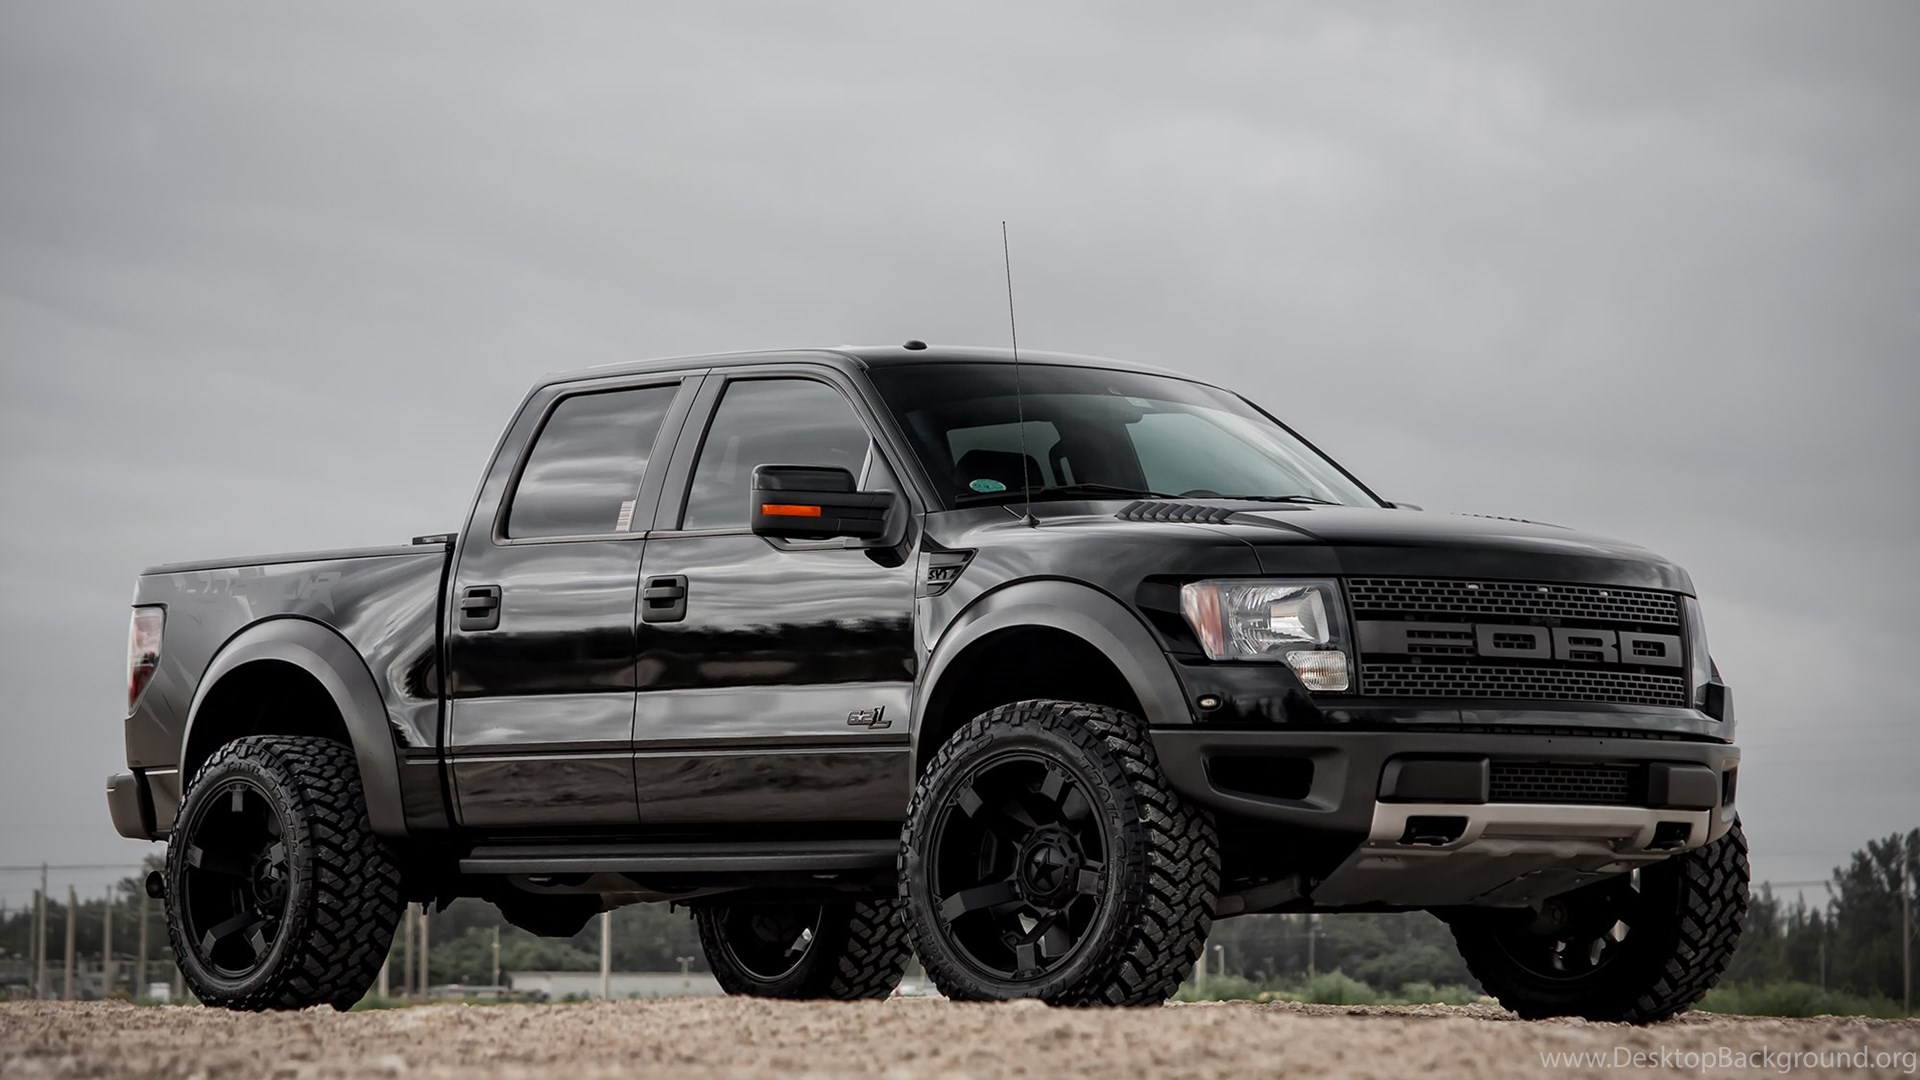 Black Ford Raptor Ford F 150 Raptor Wallpapers Johnywheels Desktop